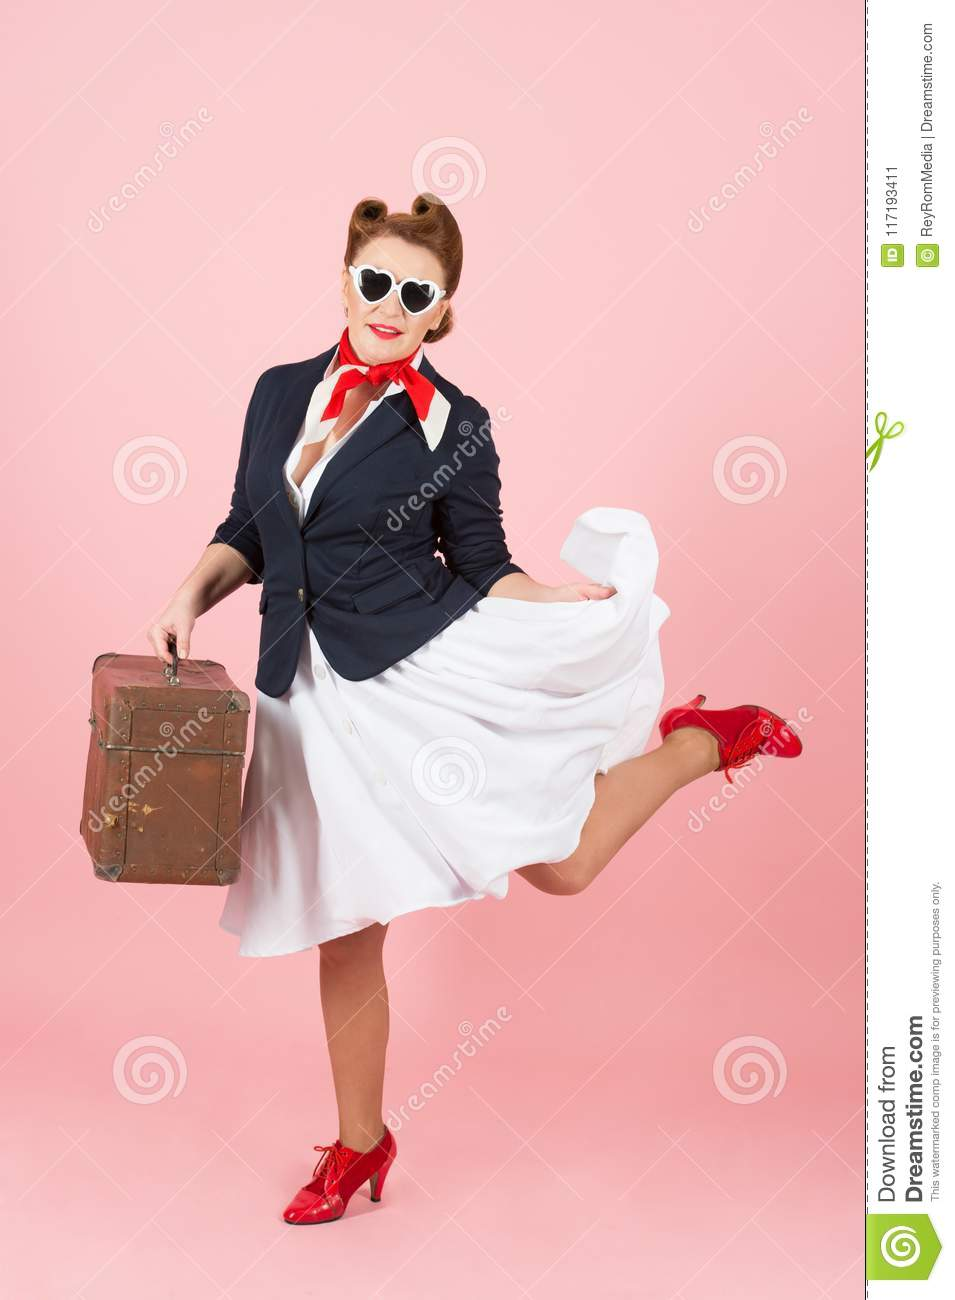 Funny traveler girl with suitcase and black sunglasses. Brunette woman in pin-up style with vintage case.